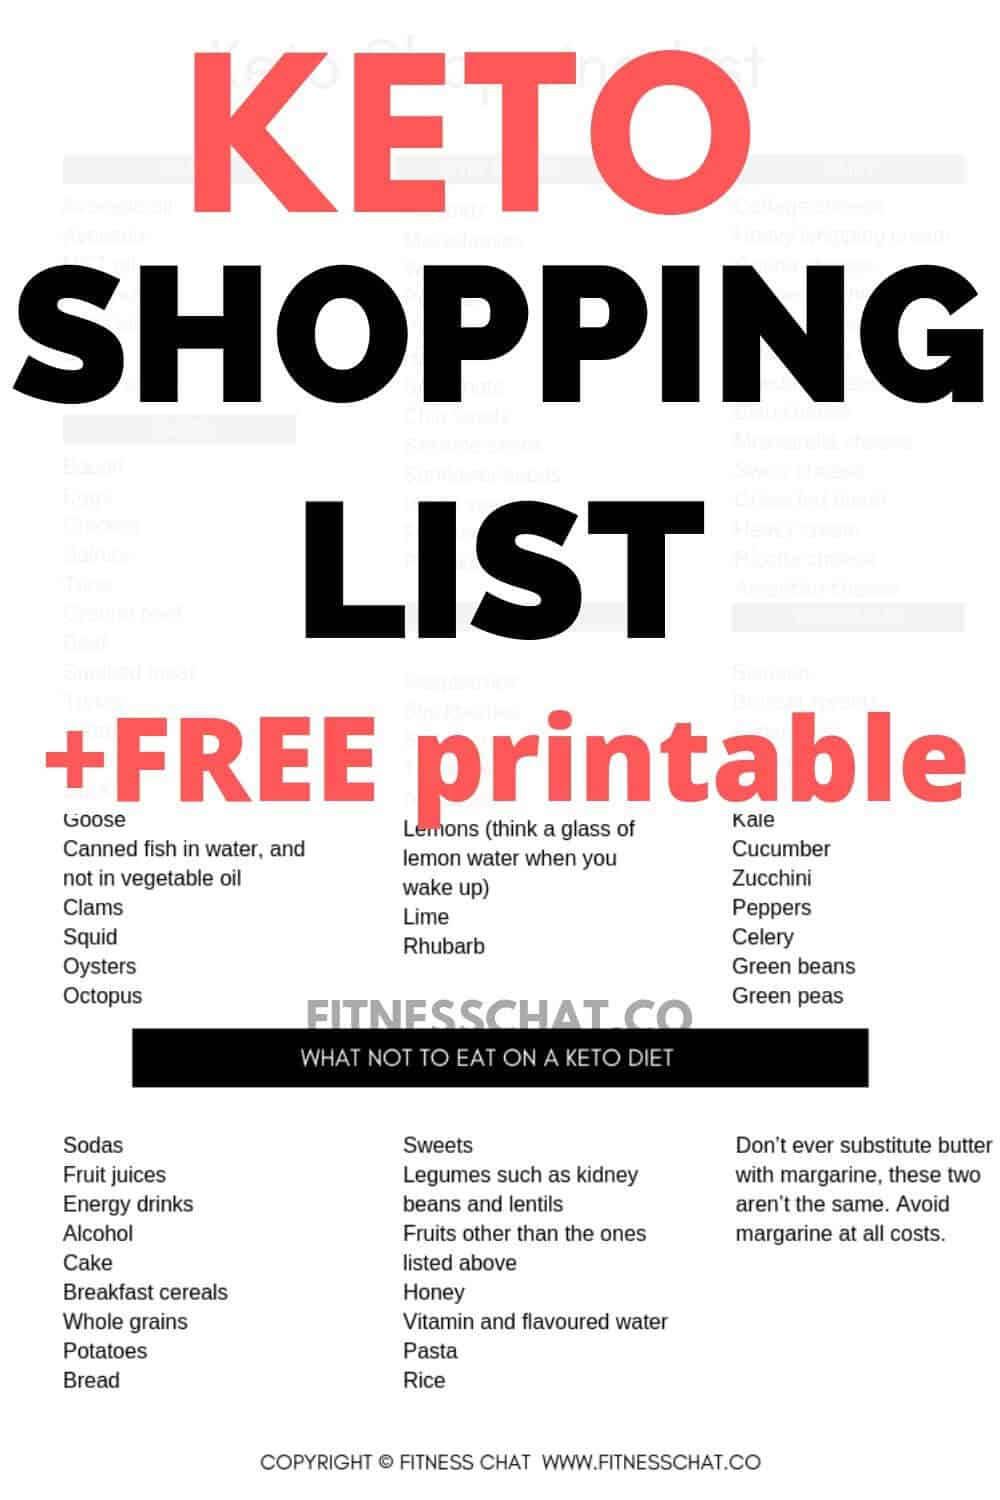 Grab your free downloadable keto shopping list. This is the ultimate keto diet for beginners meal plan, including keto snacks to eat